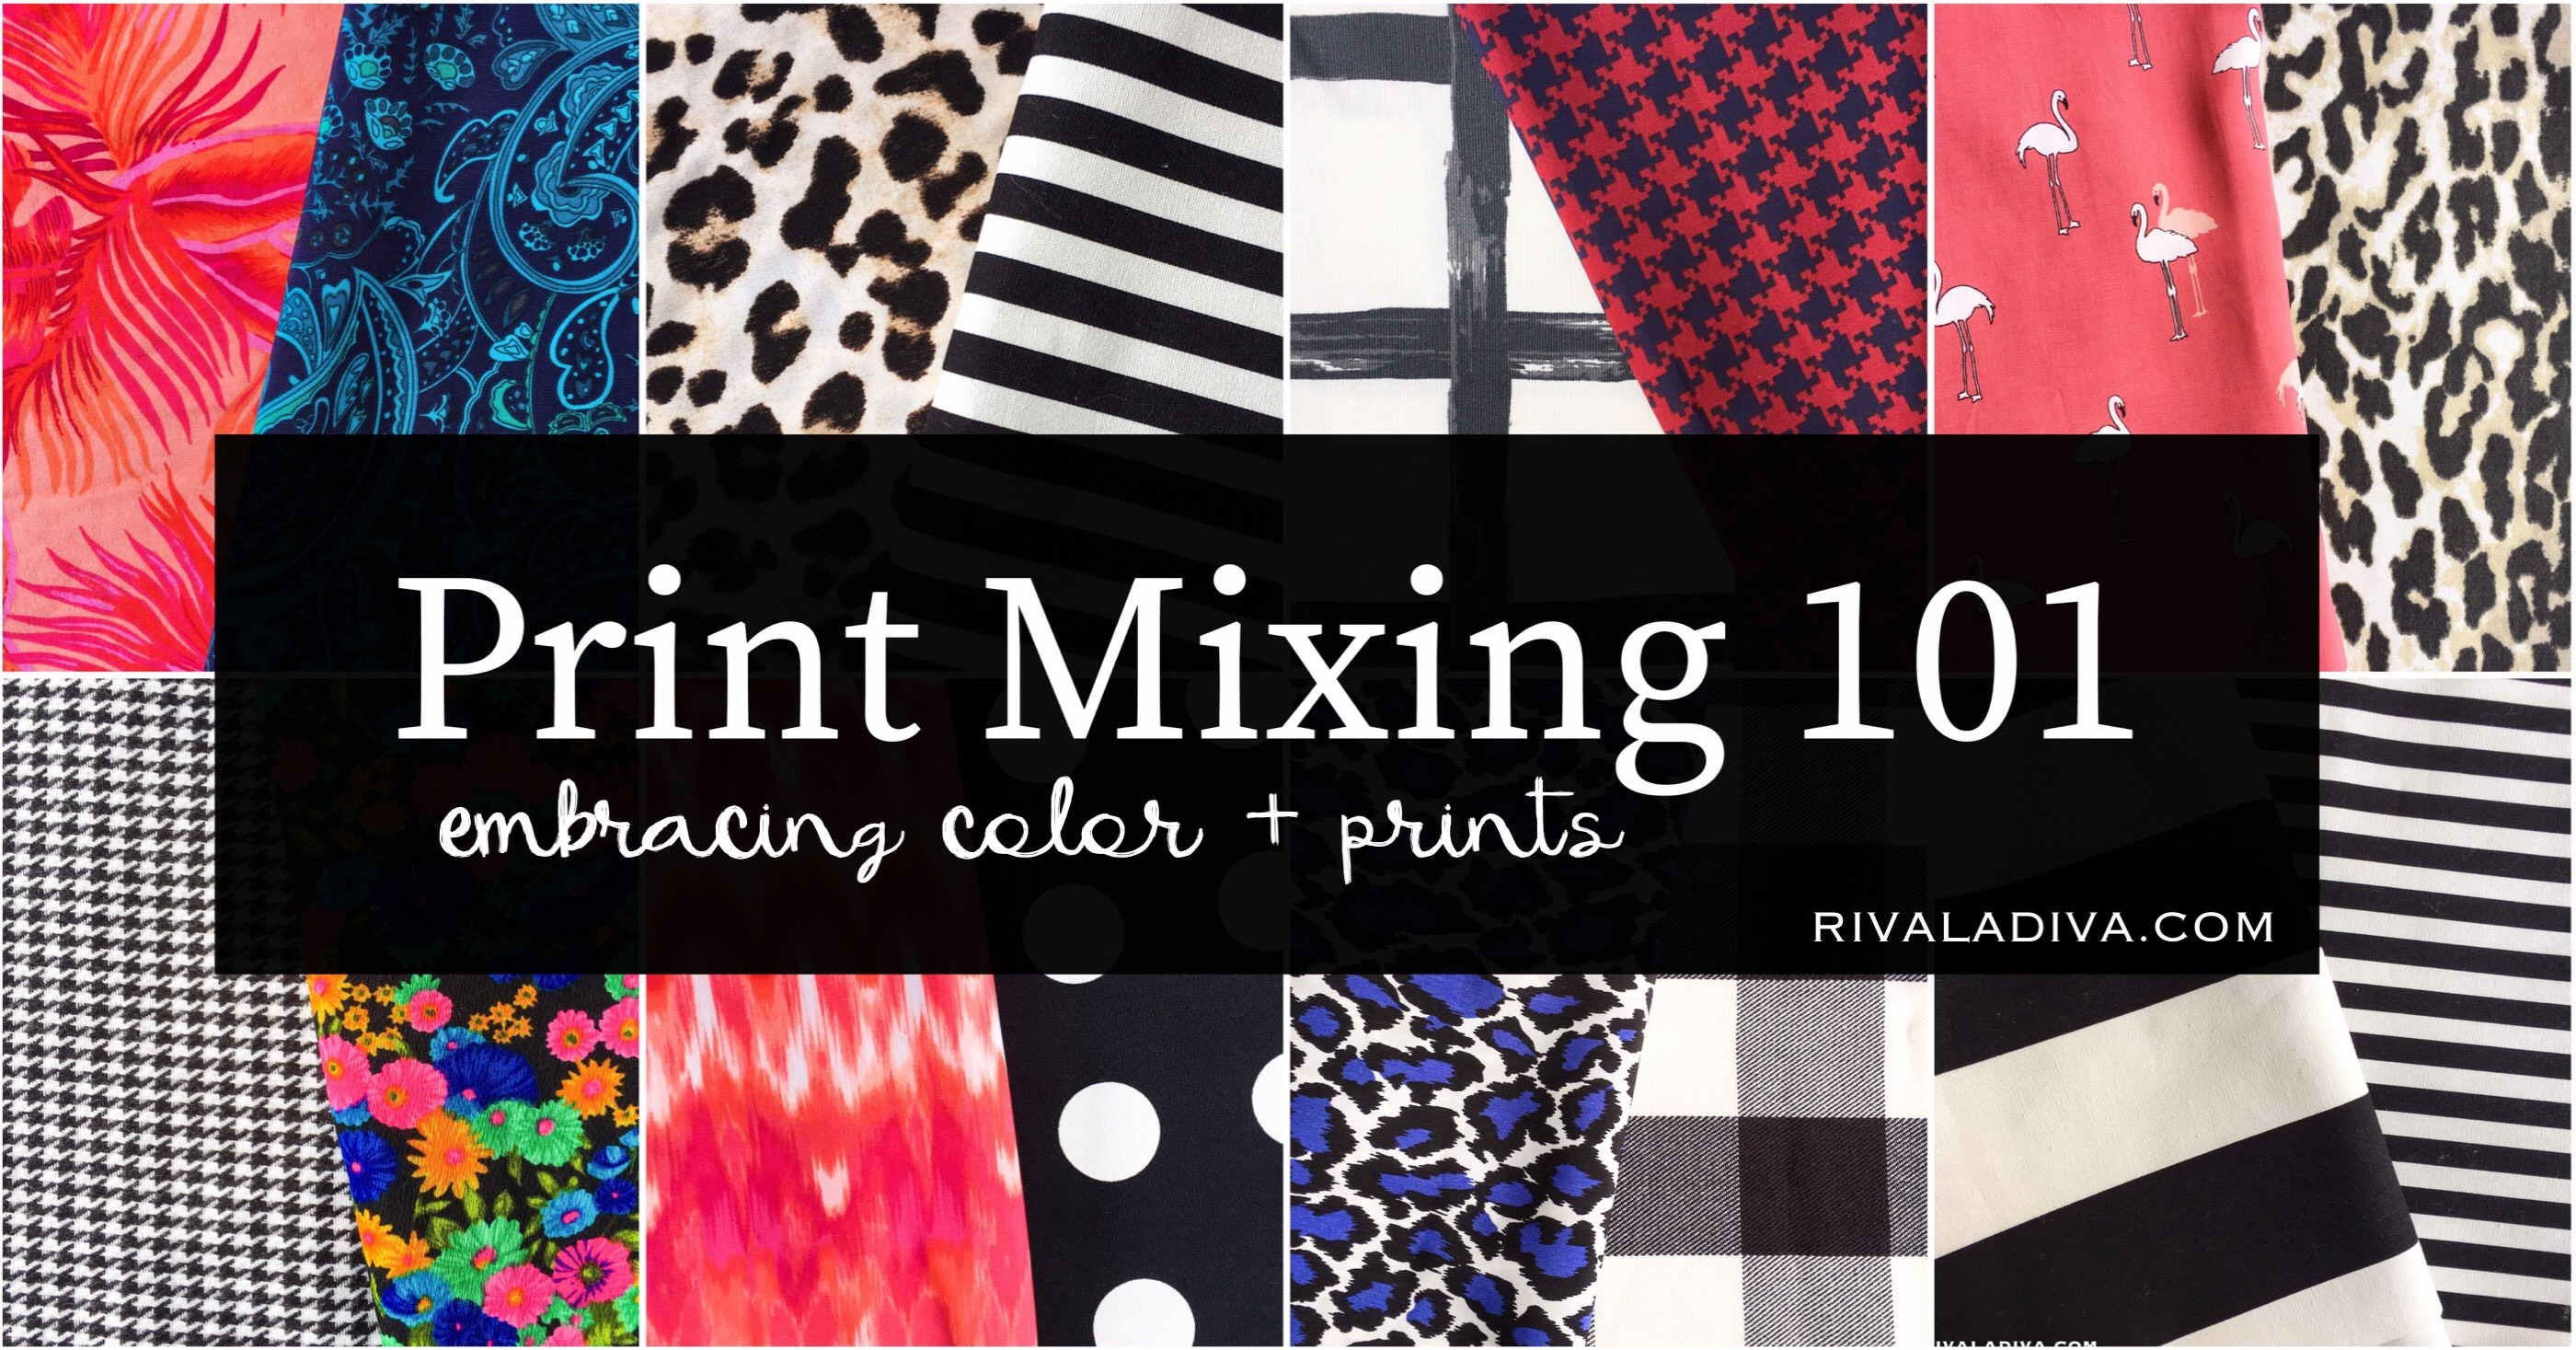 Print Mixing 101 - Embracing Color and Prints